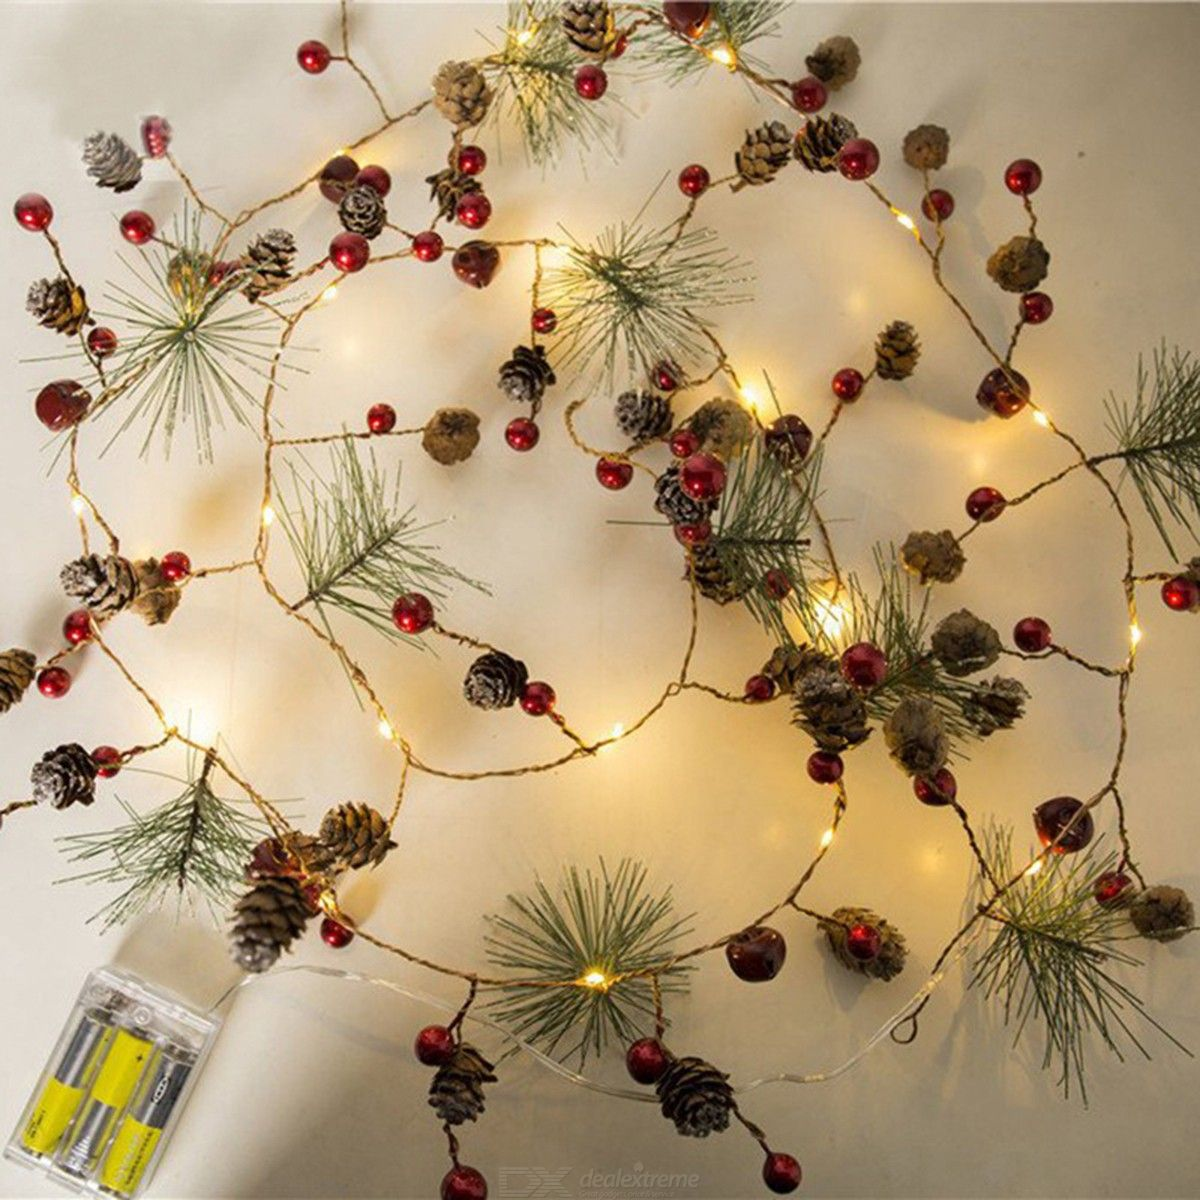 2m LED Strip Lights Pine Cone Cherry Decor Home Christmas LED String Light Battery Powered - from $9.49